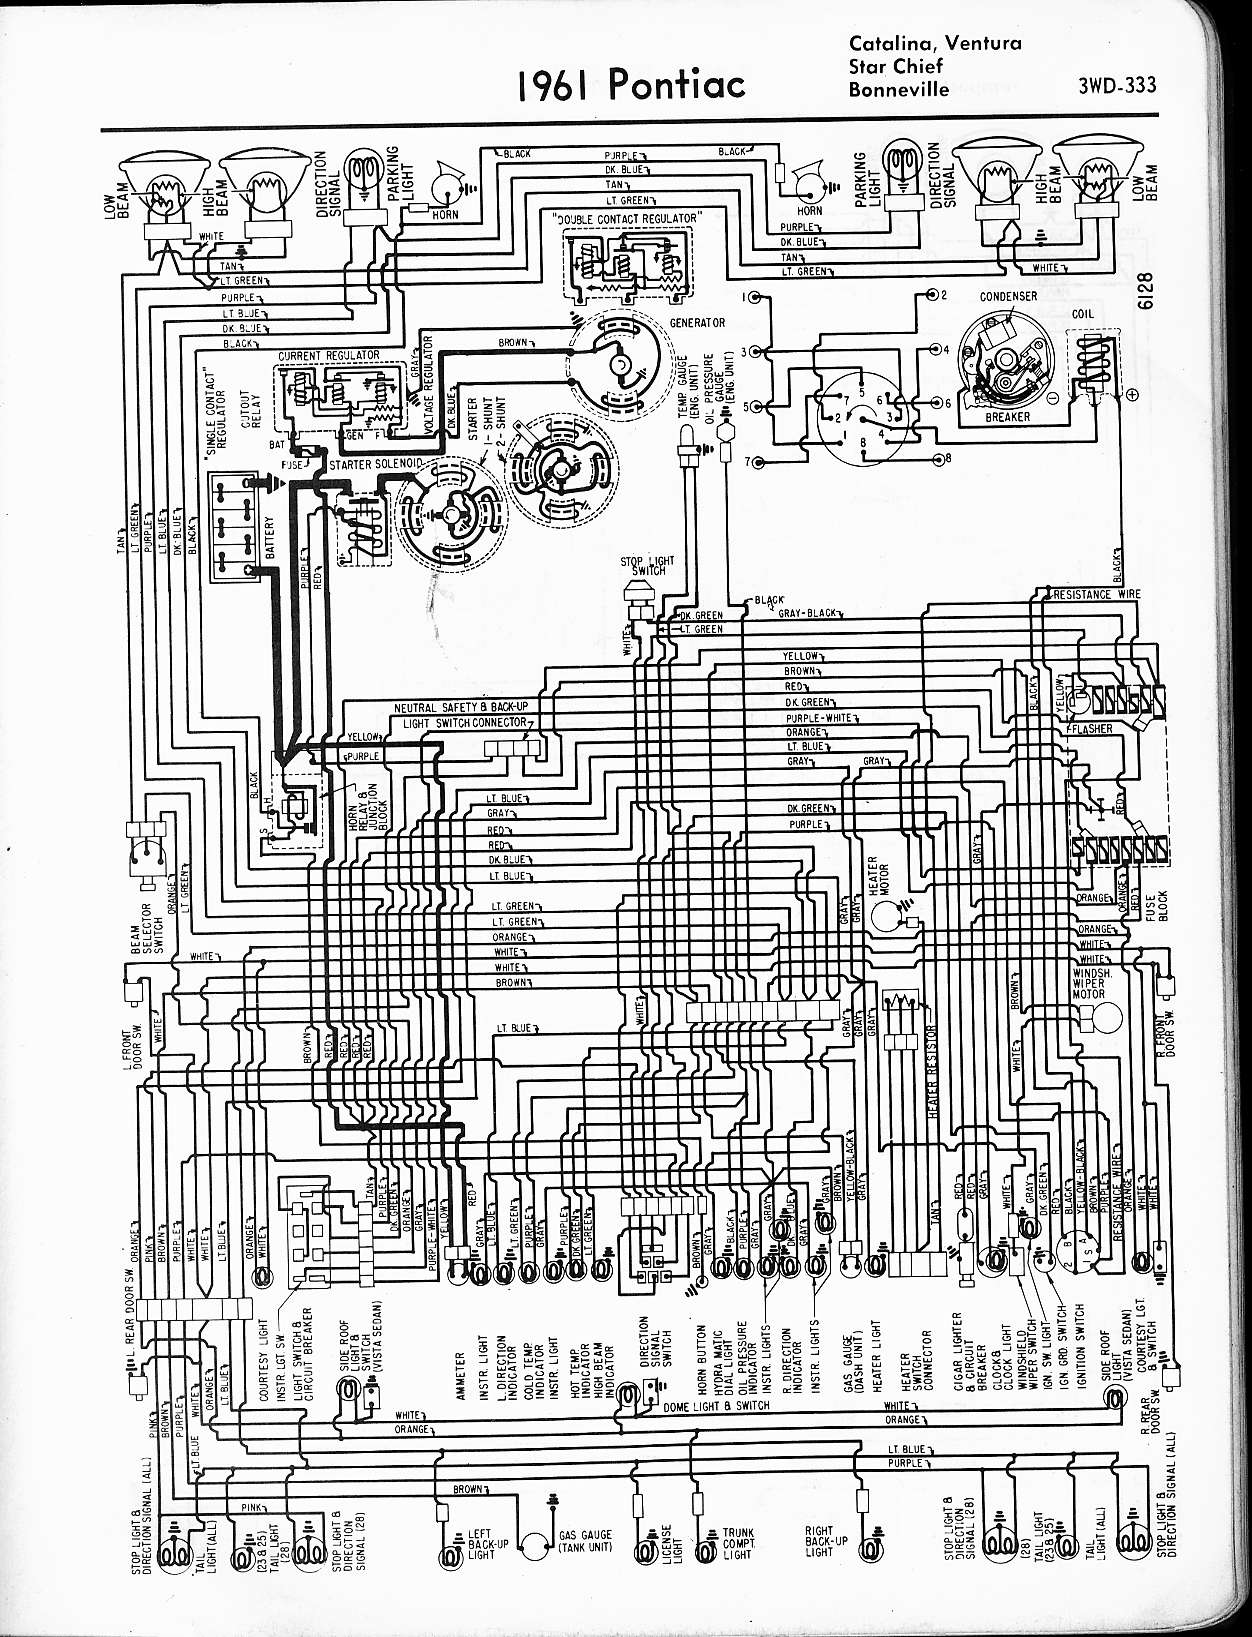 MWire5765 333 wiring diagram pontiac the wiring diagram readingrat net 1954 Pontiac Chieftain at n-0.co